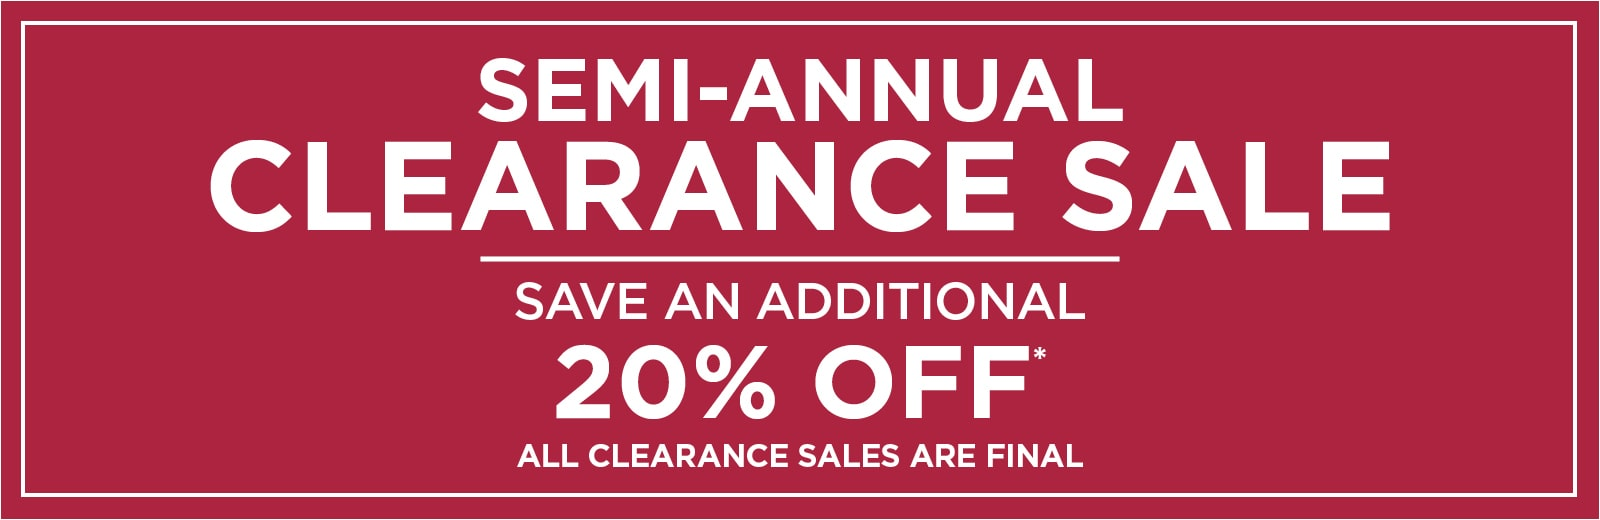 Semi Annual Clearance Sale Save Additional 20% OFF